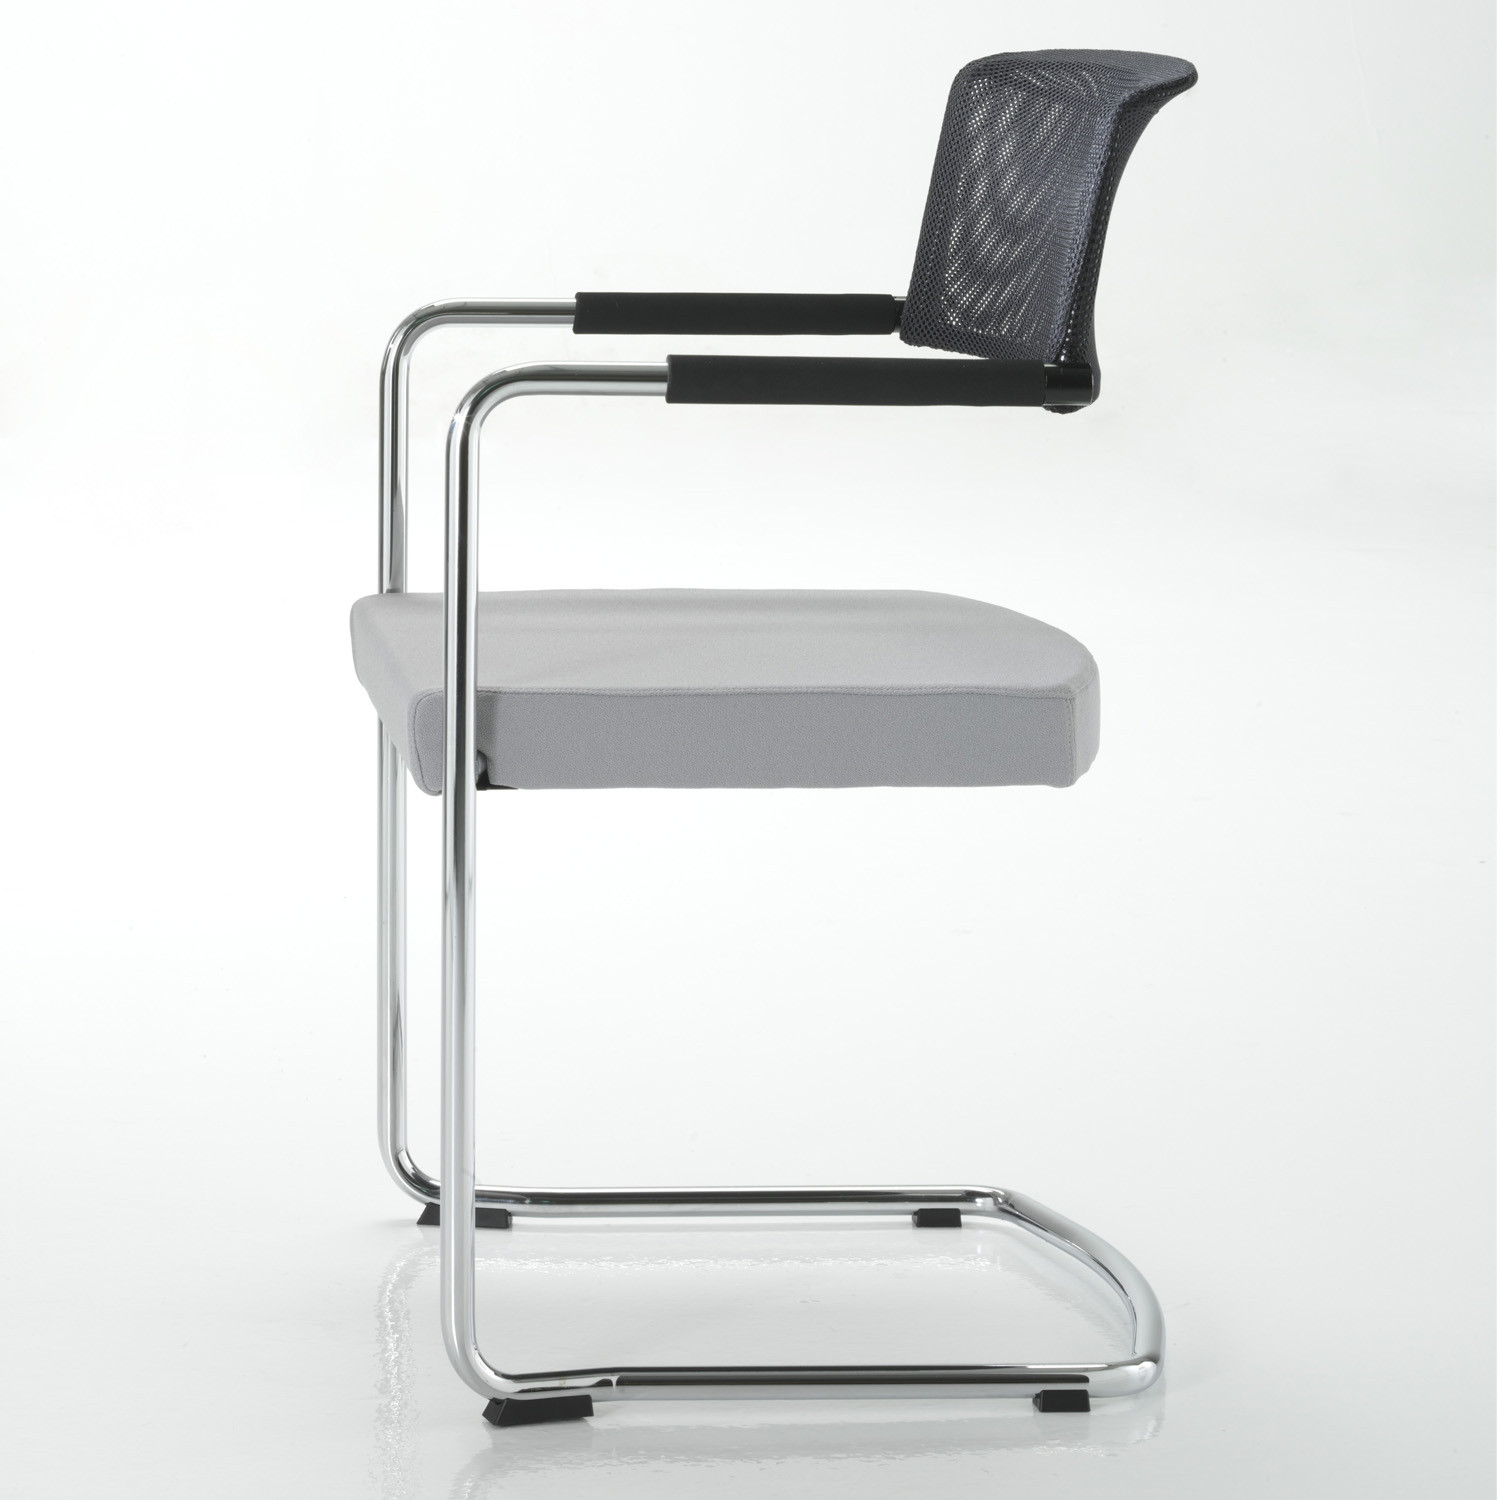 La Mesh Meeting Chair features a simple profile